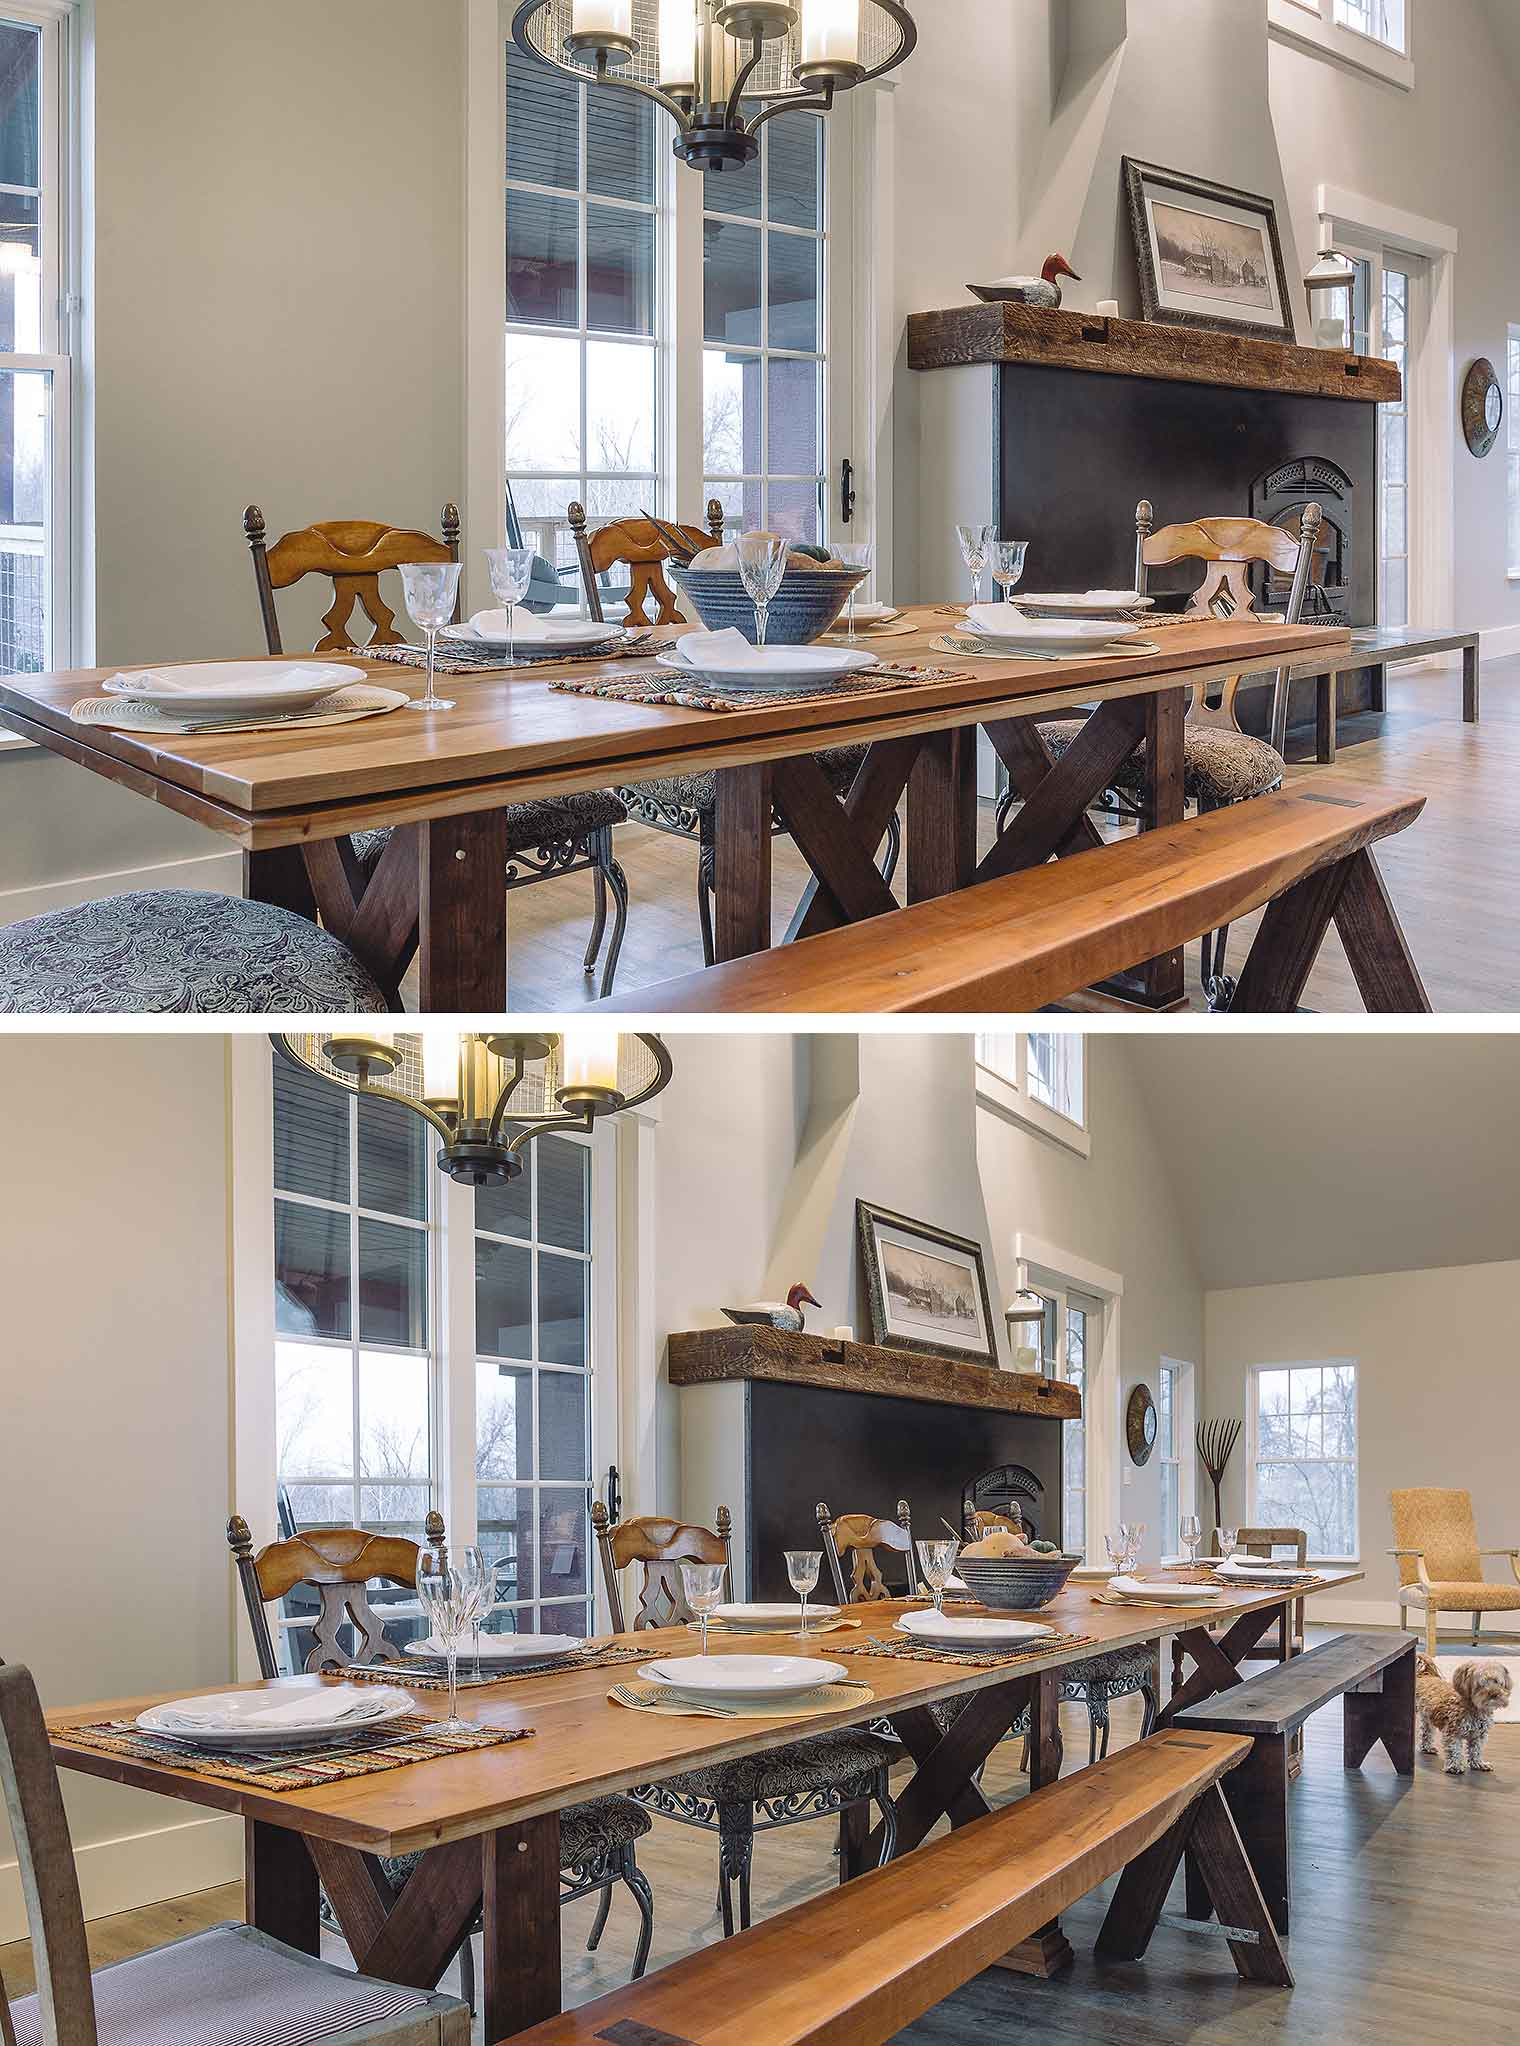 St Charles Kitchen Cabinets A Lifetime Love Of Barns Inspires A New Custom Home